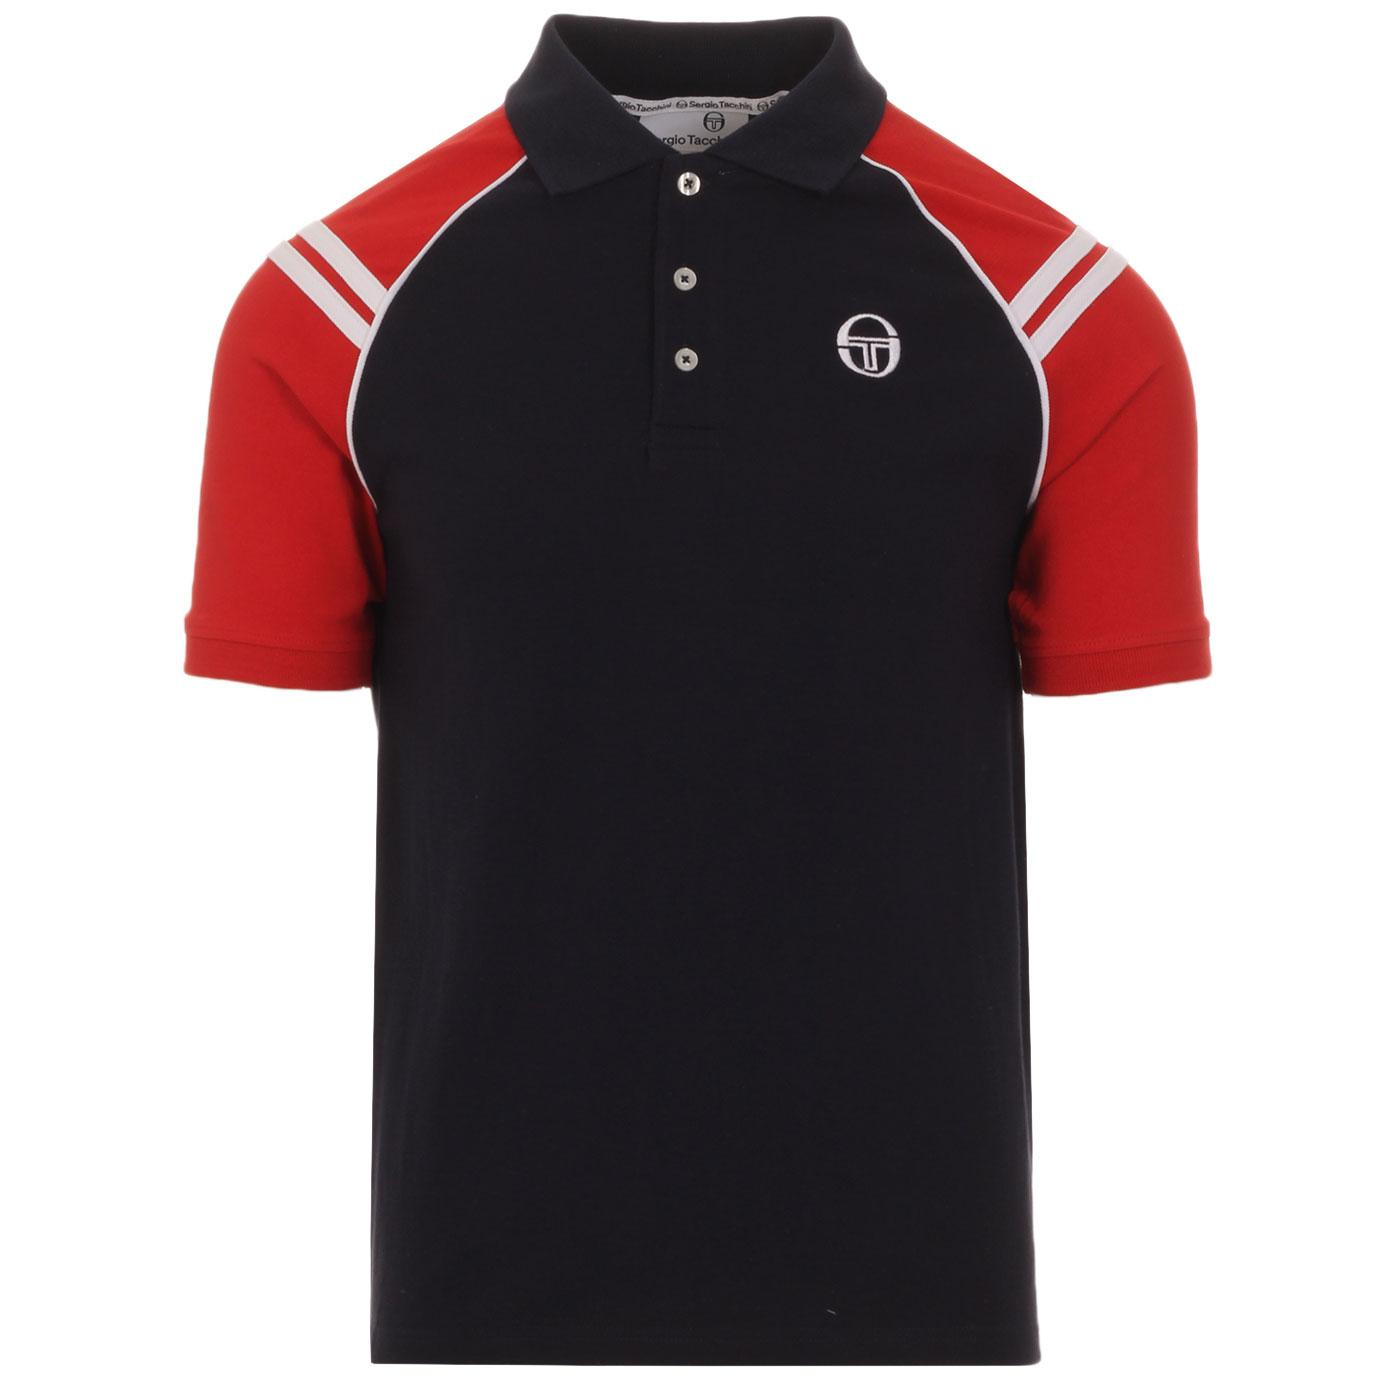 Cortona SERGIO TACCHINI Retro 80s Polo Top (NS)